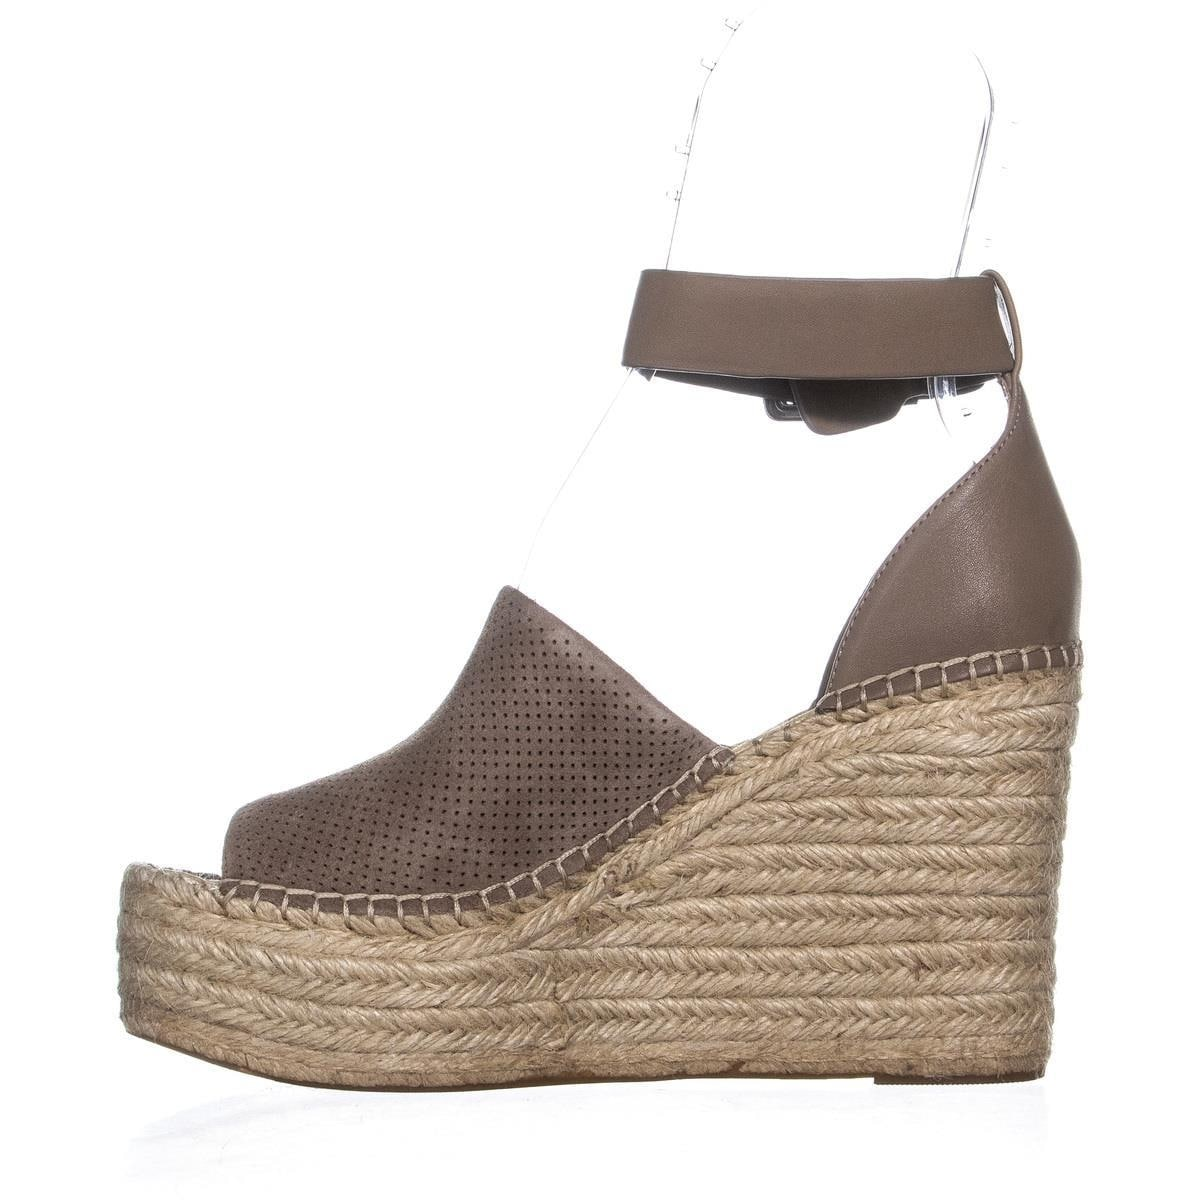 079a69fb22a Shop Marc Fisher Adalyn Ankle Strap Wedge Peep Toe Sandals